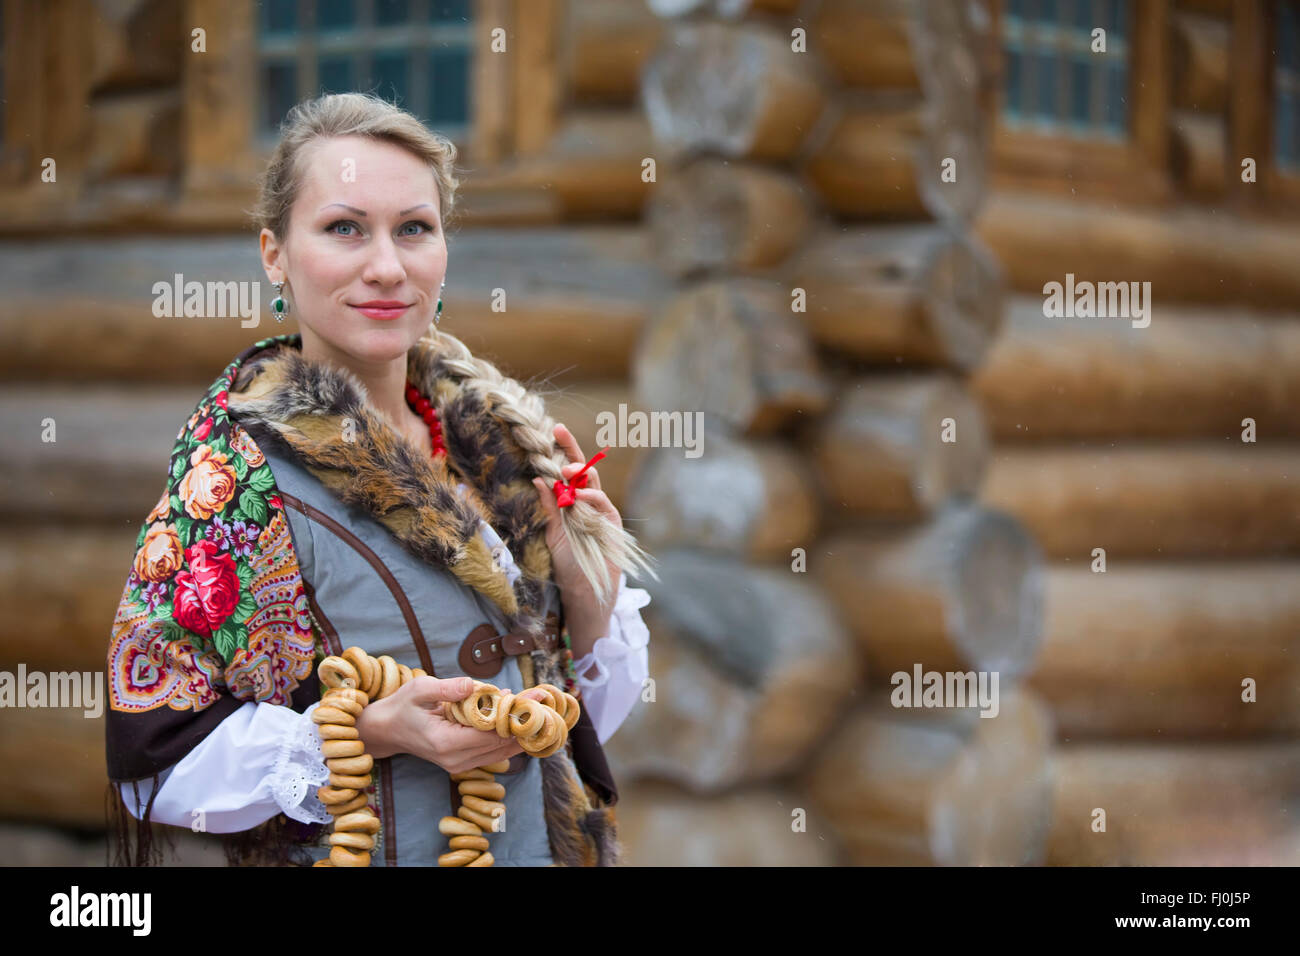 Young Russian woman in a traditional Russian headscarf, Moscow,Russia - Stock Image